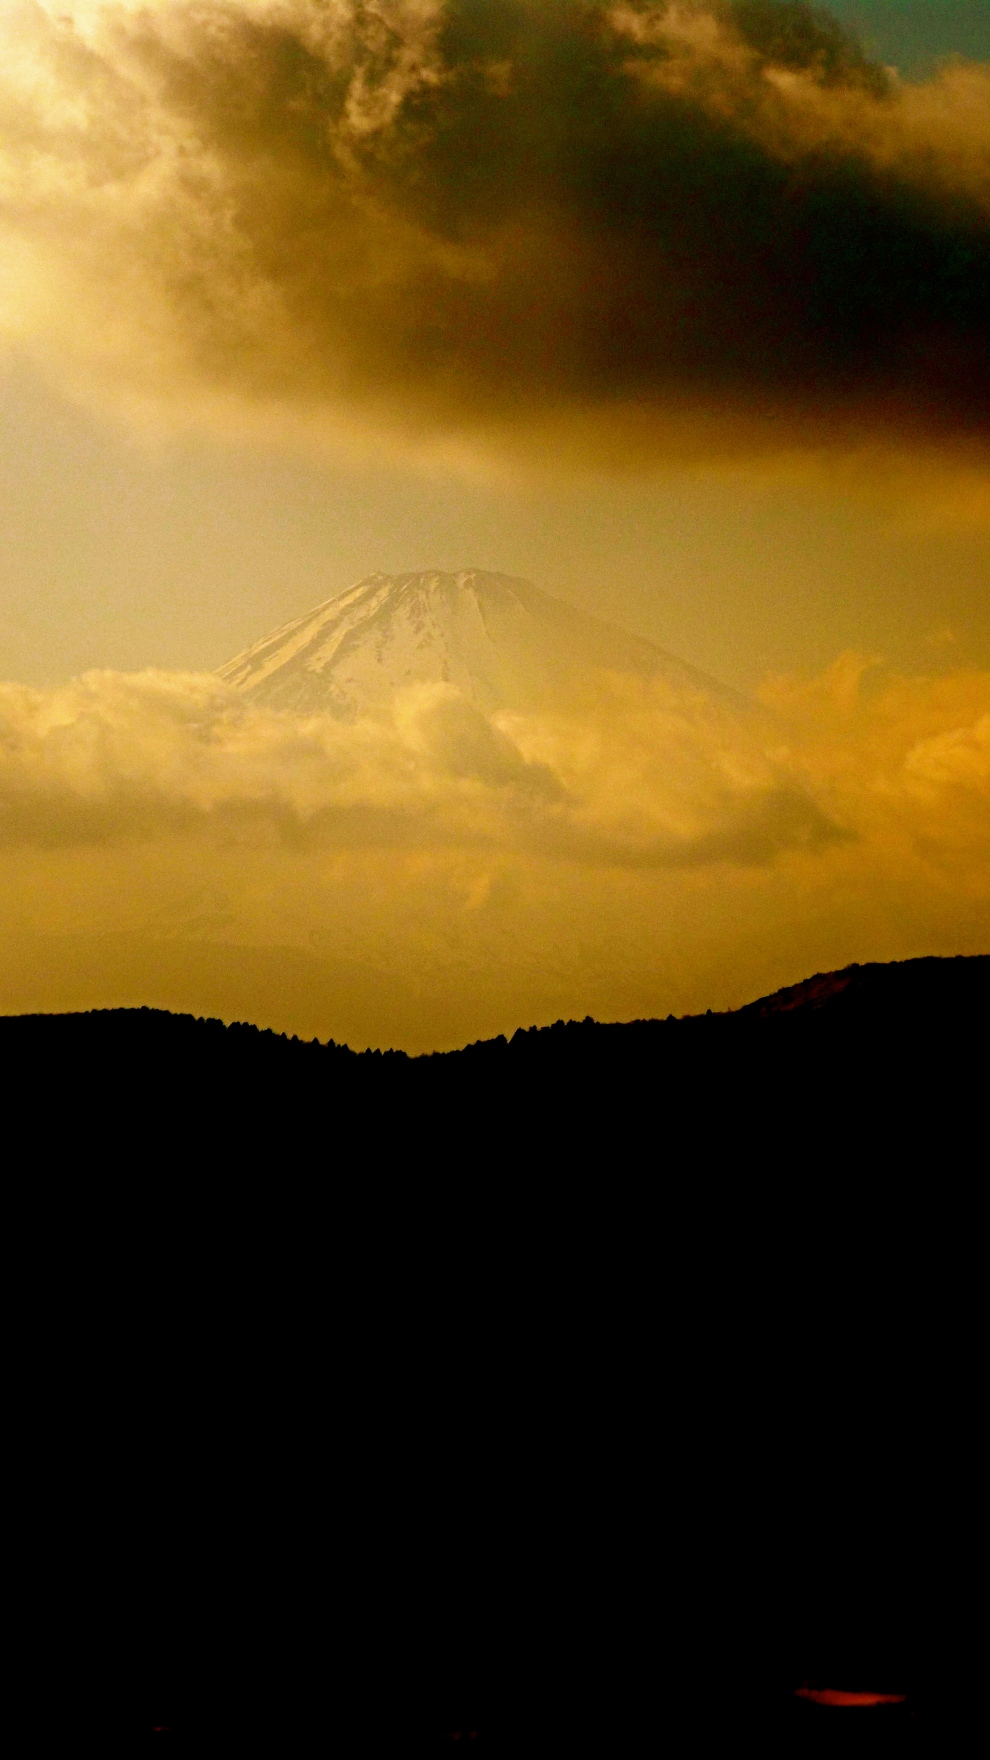 Mt. Fuji in the background